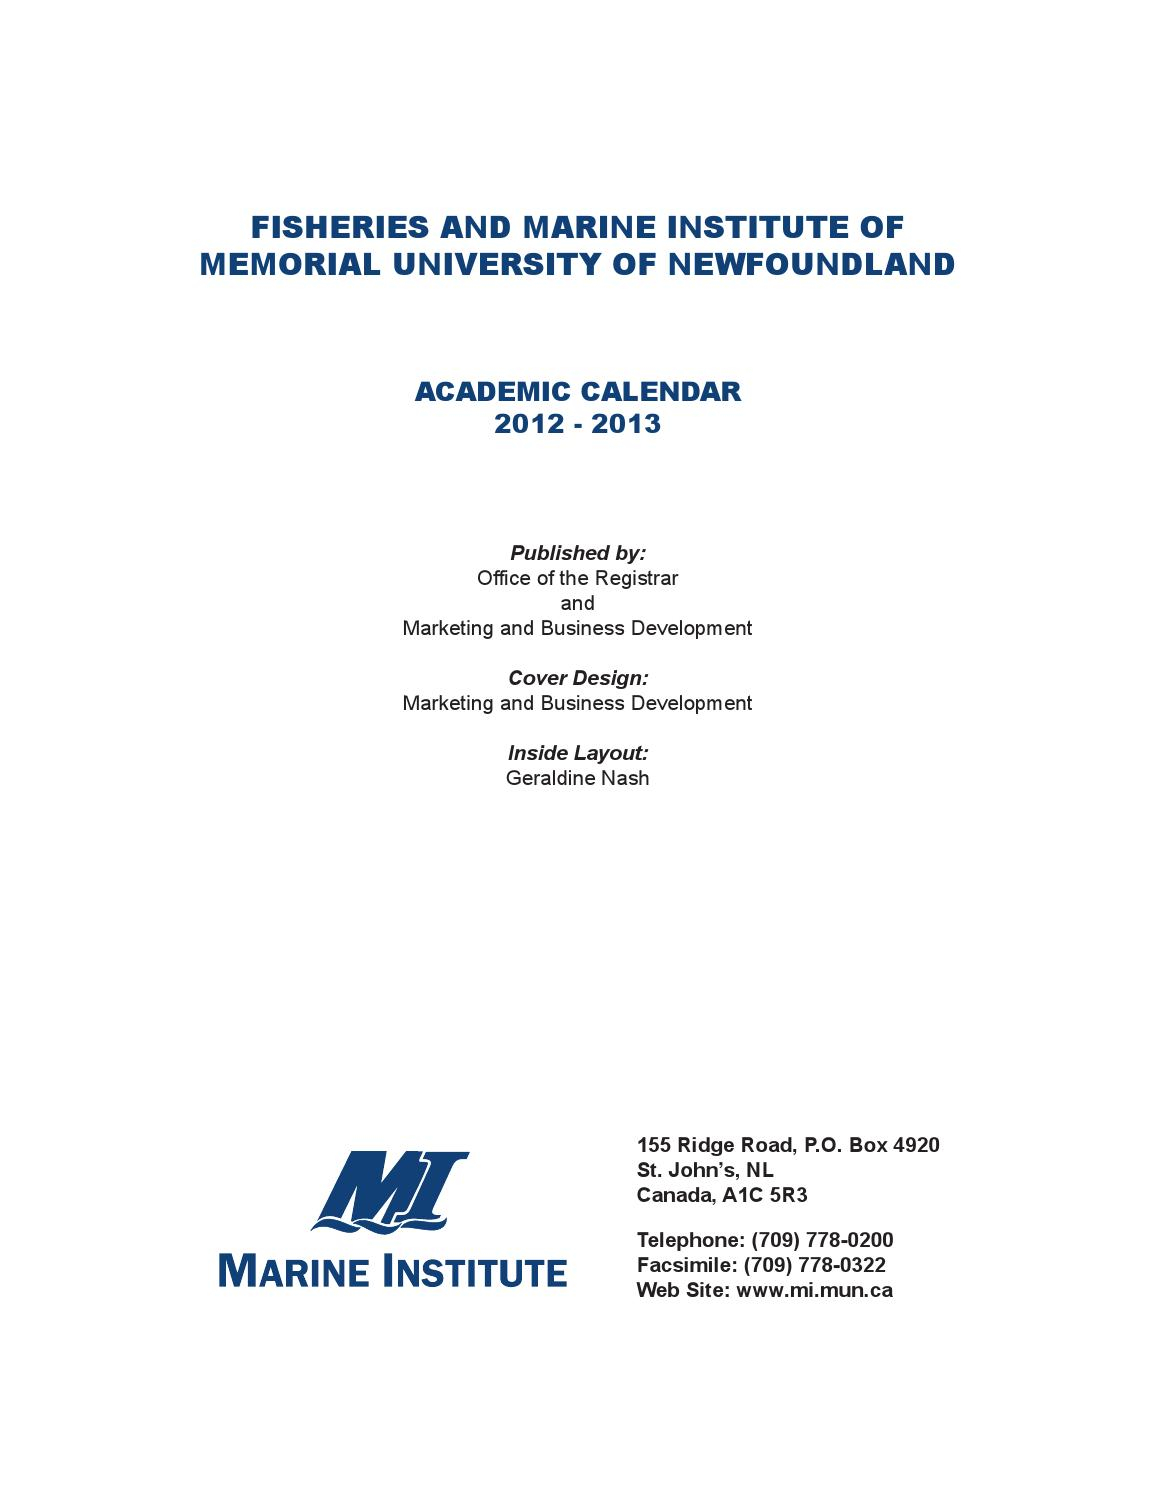 Mi Web Calendarmarine Institute - Issuu in Case Western Reserve University Academic Calendar